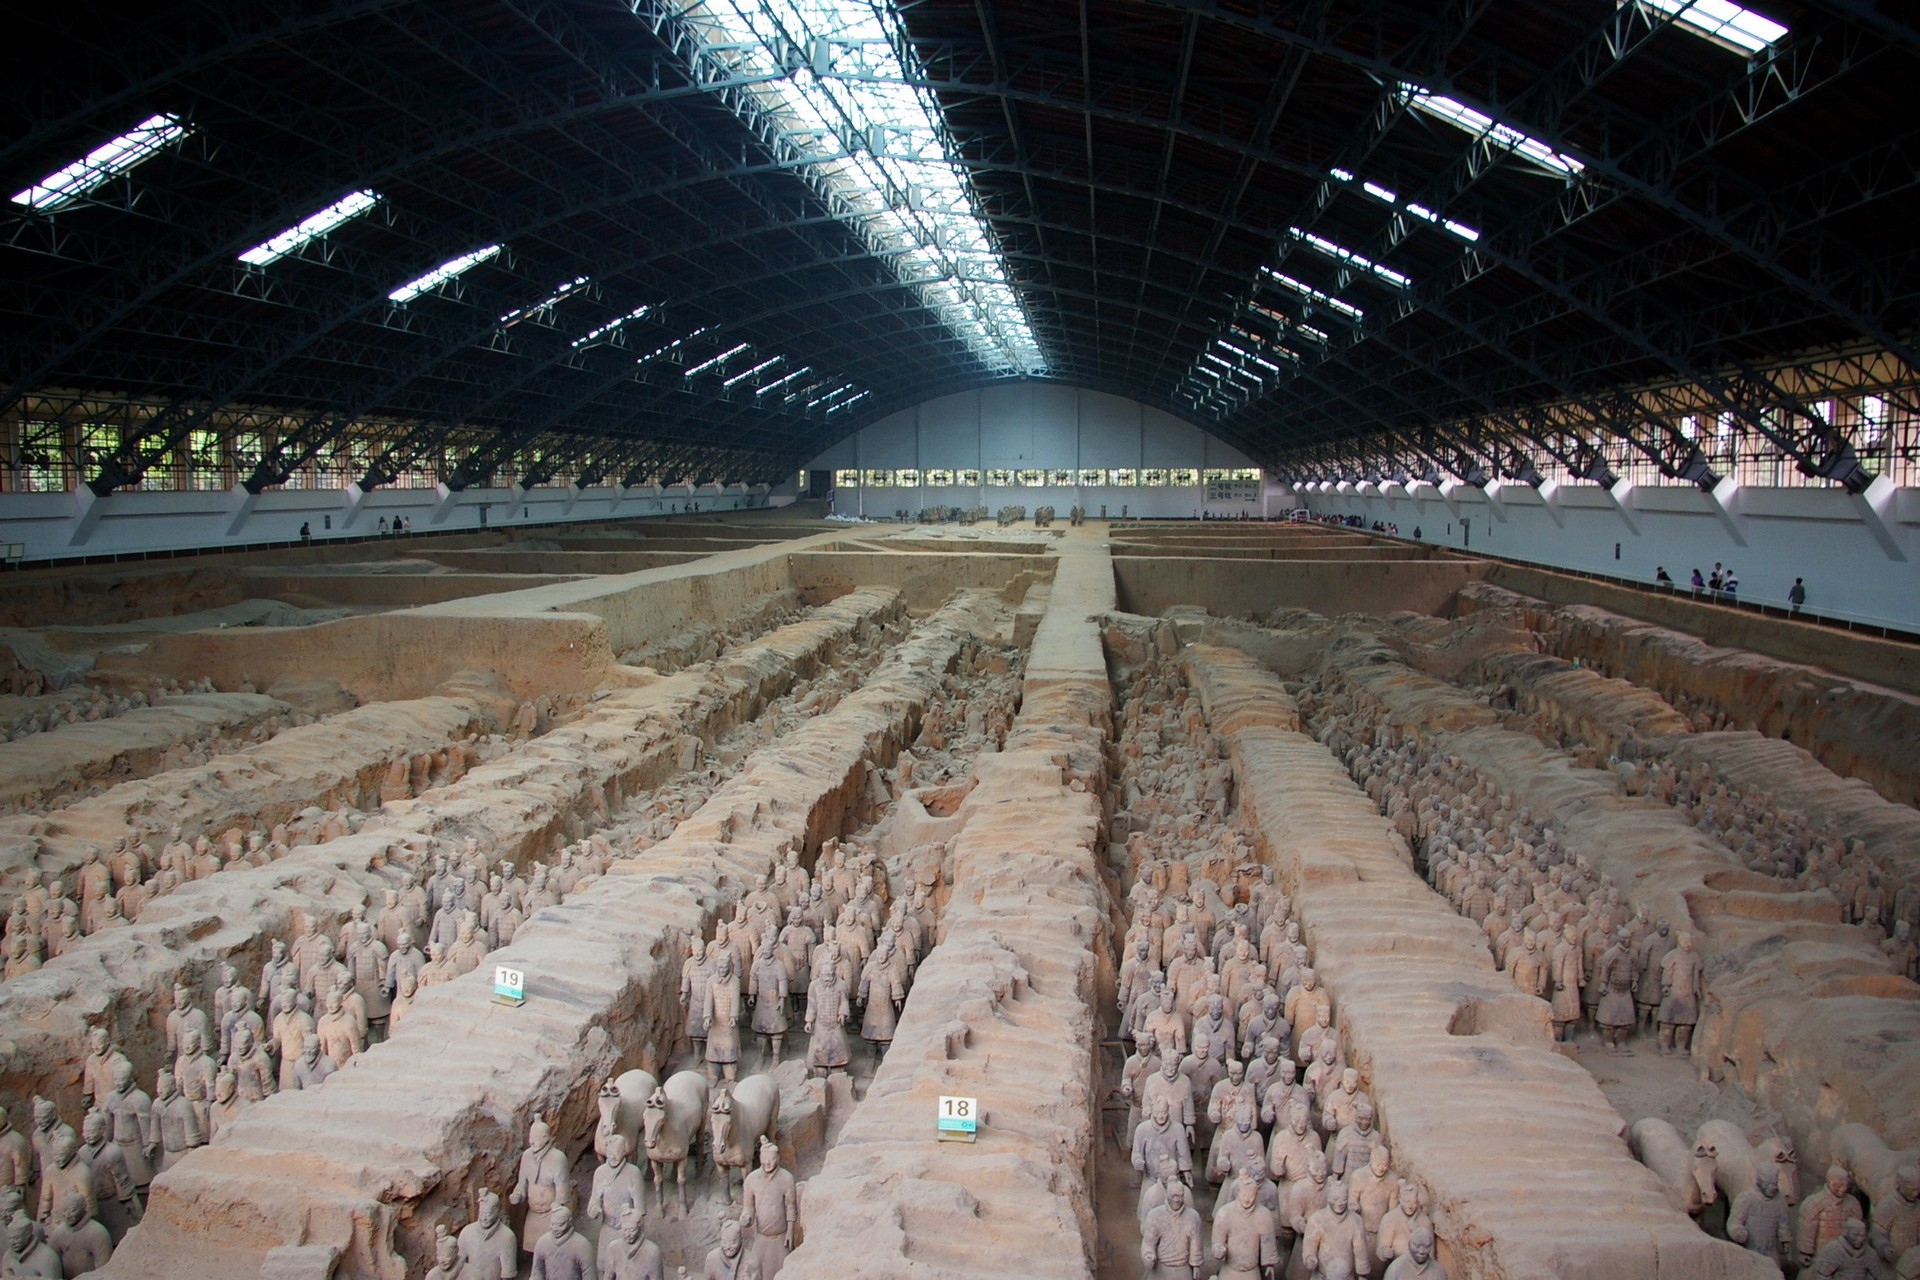 Terracotta army in warehouse in Xian China